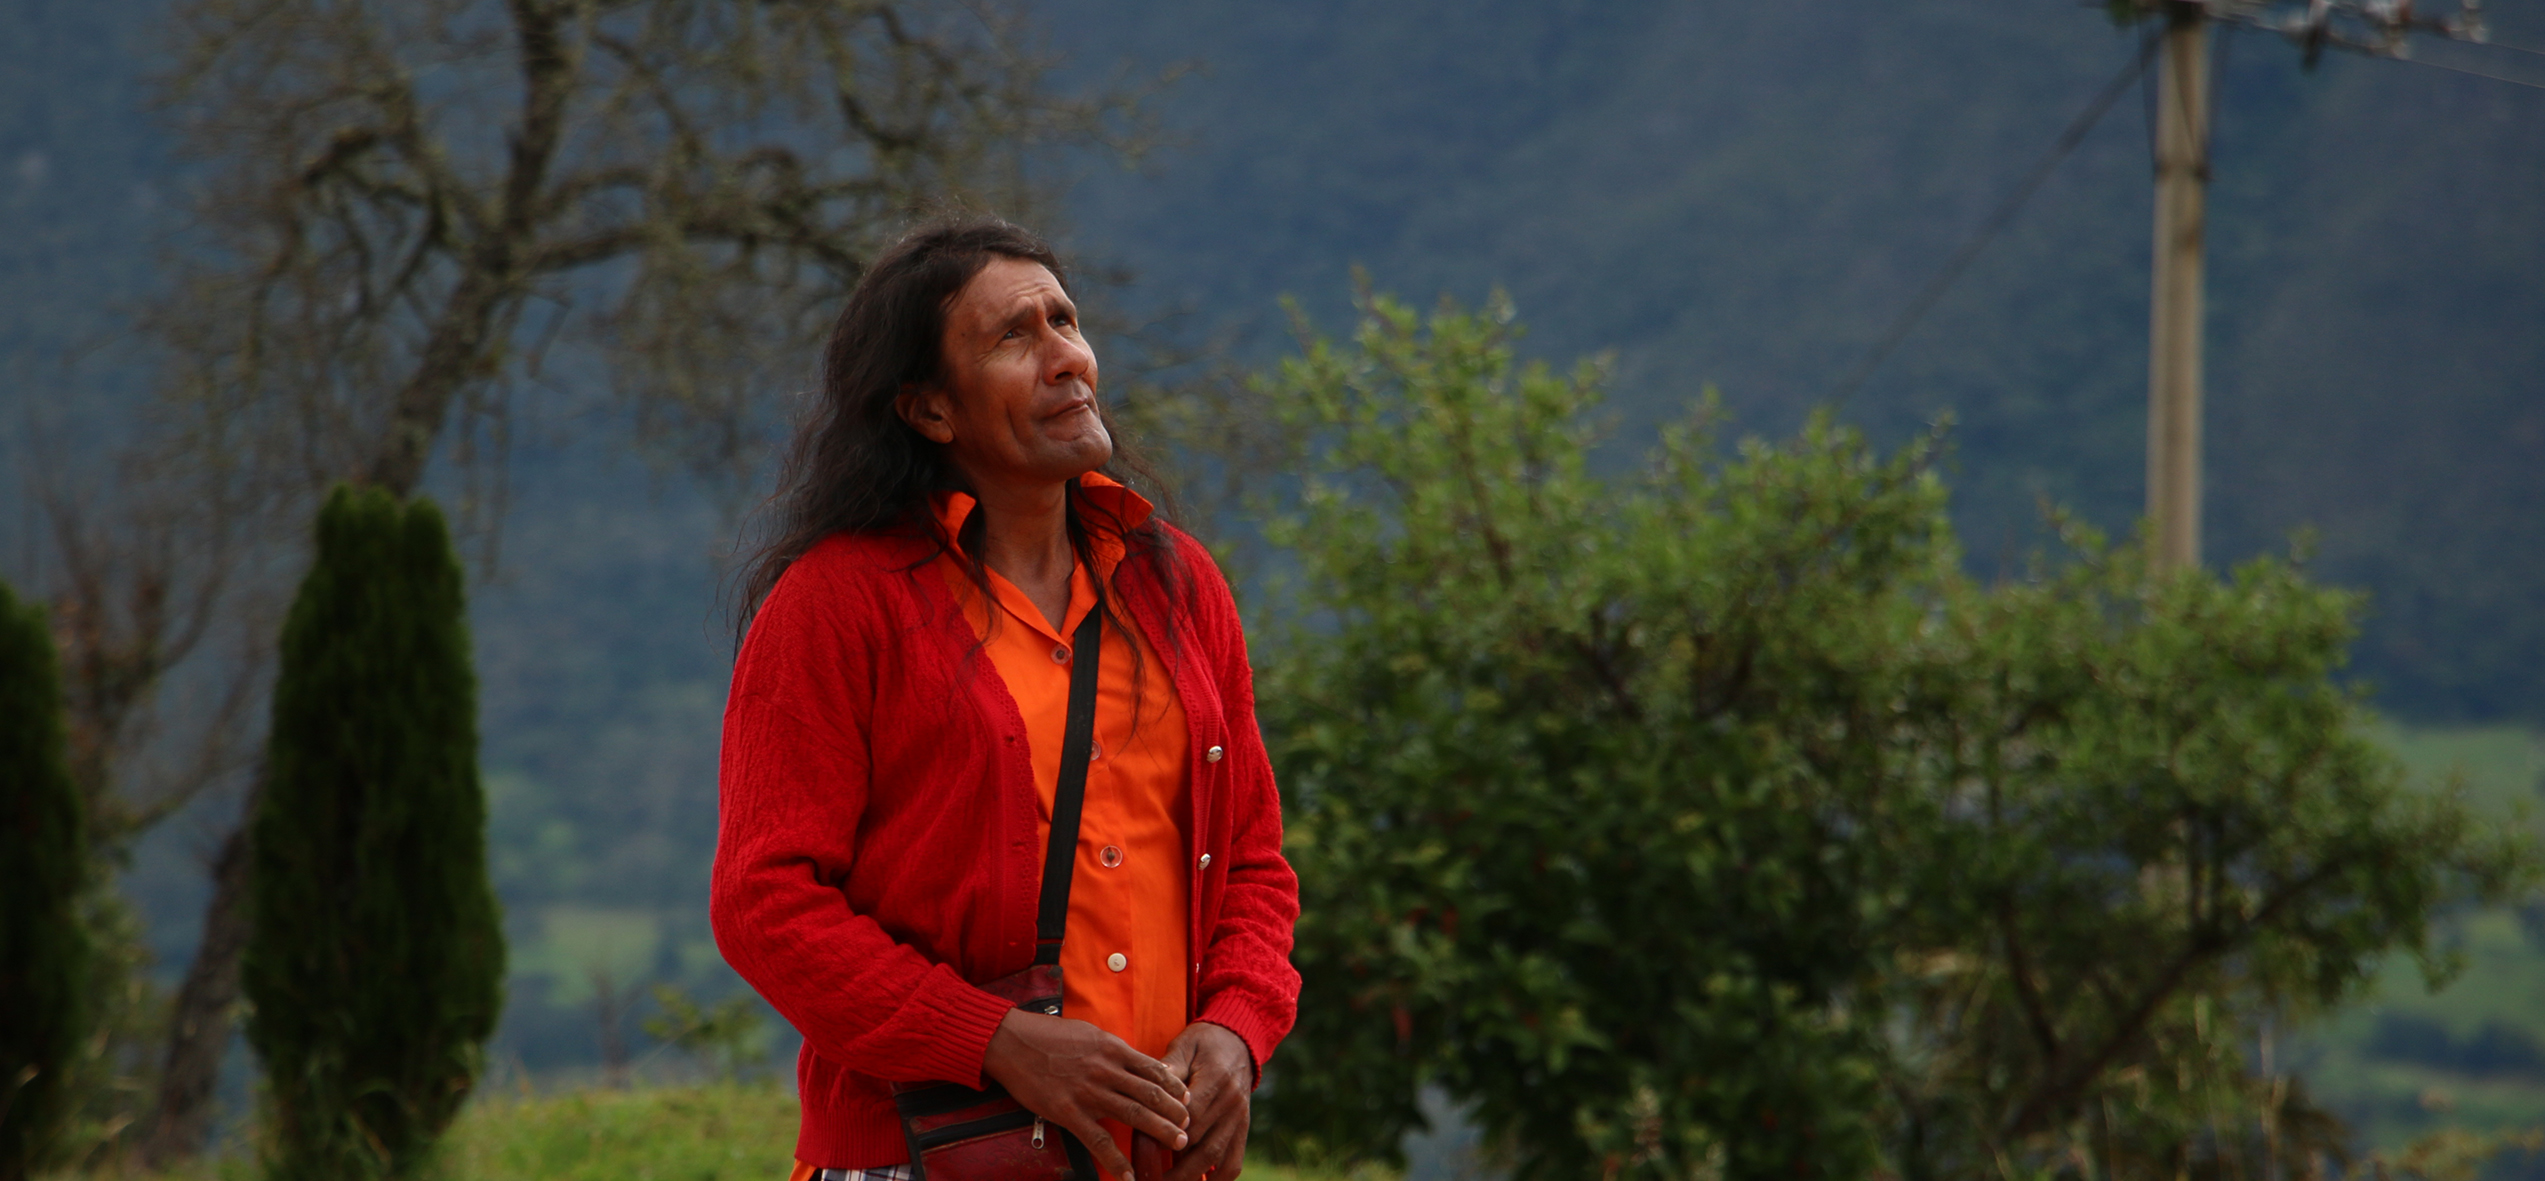 Miss María, Skirting the Mountain offers an intimate look at the life of a trans campesina in Colombia